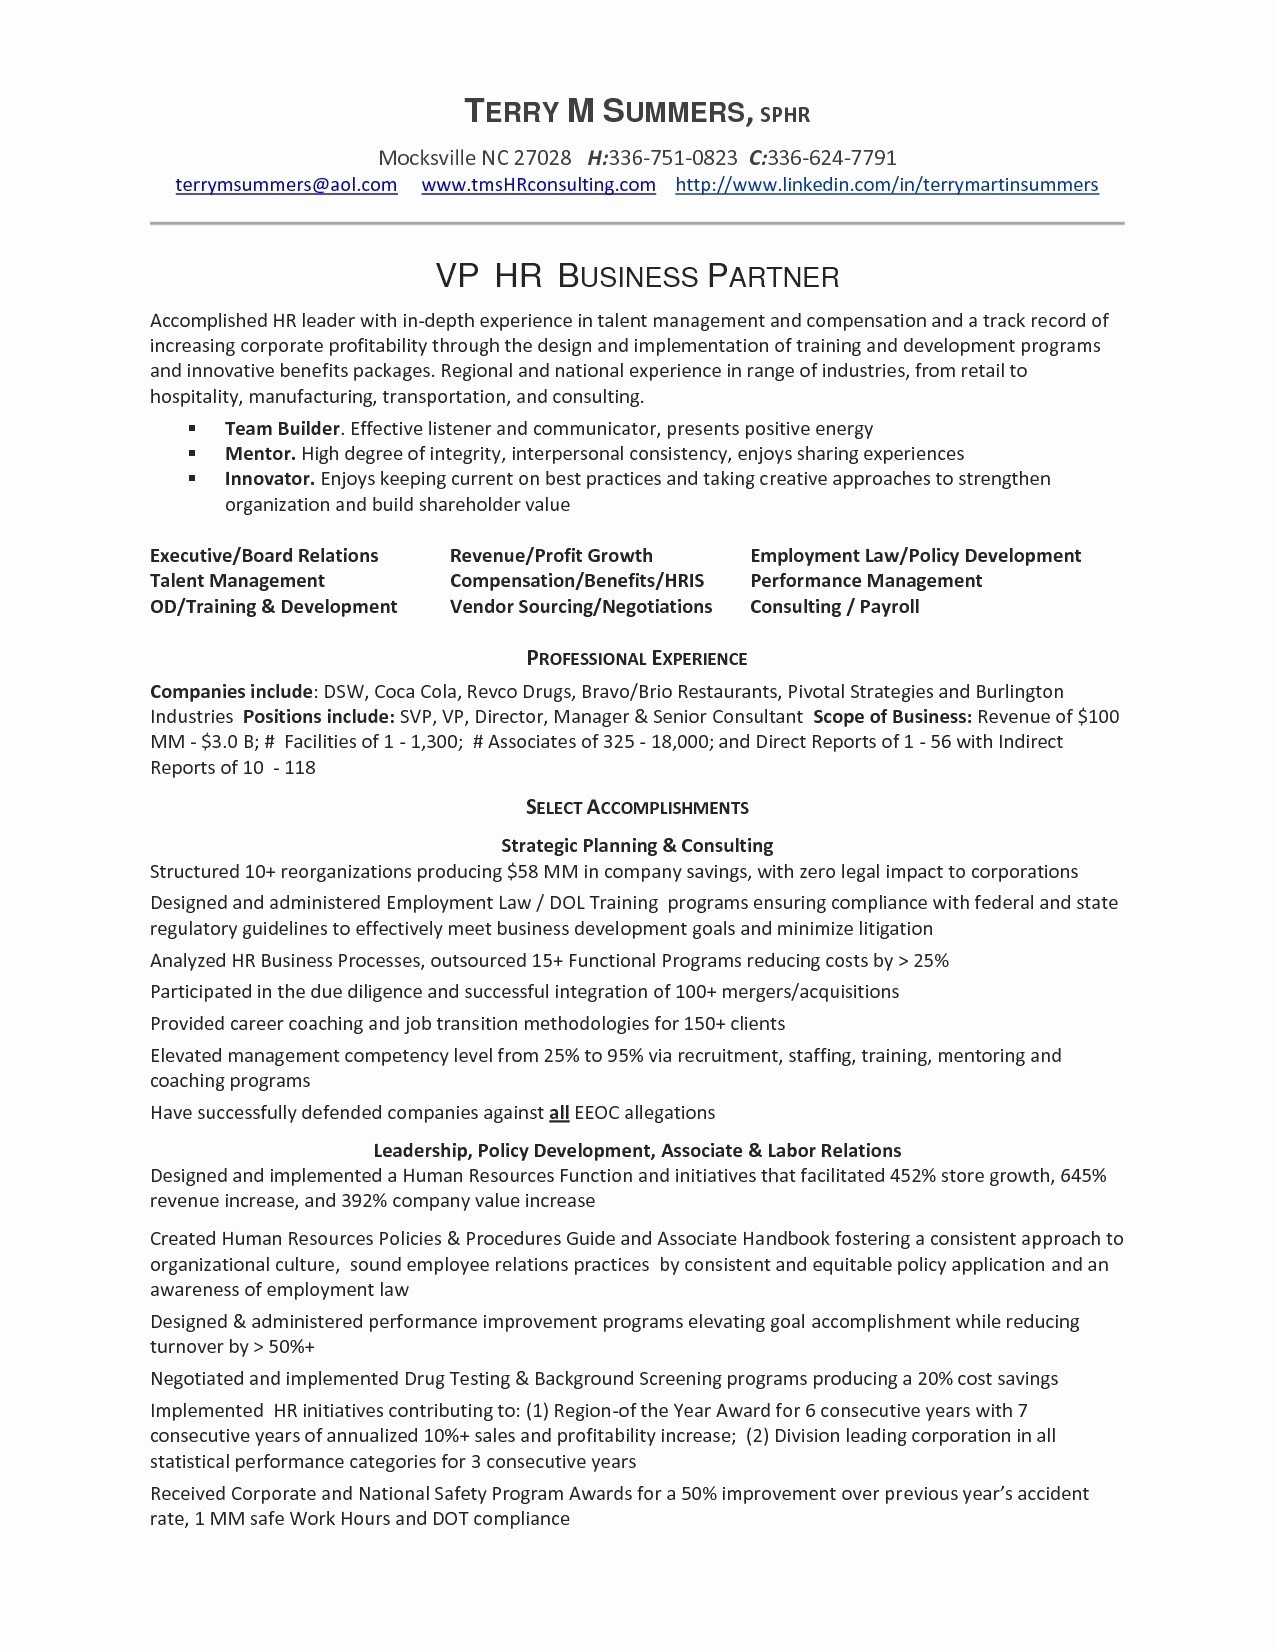 business analyst resume pdf Collection-Business Analyst Resume Sample Pdf 2-i